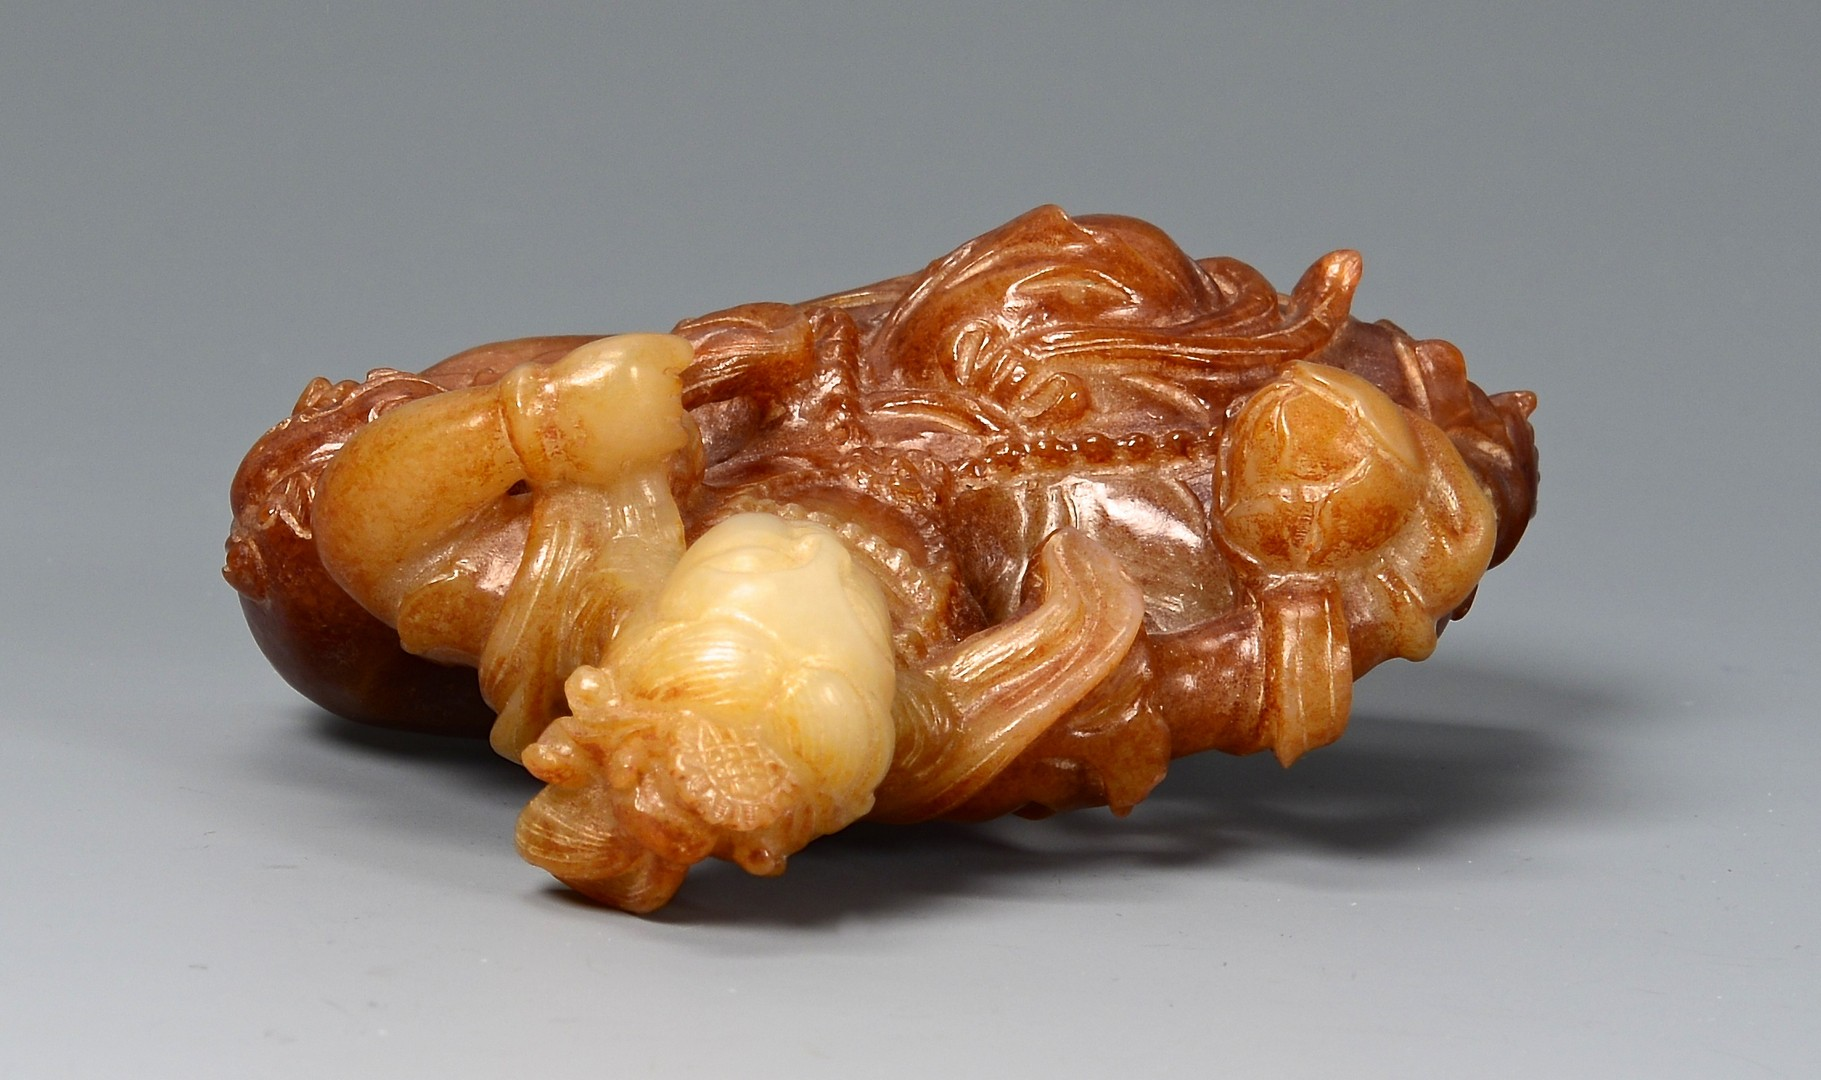 Lot 16: Chinese Jade Figural Buddha Carving